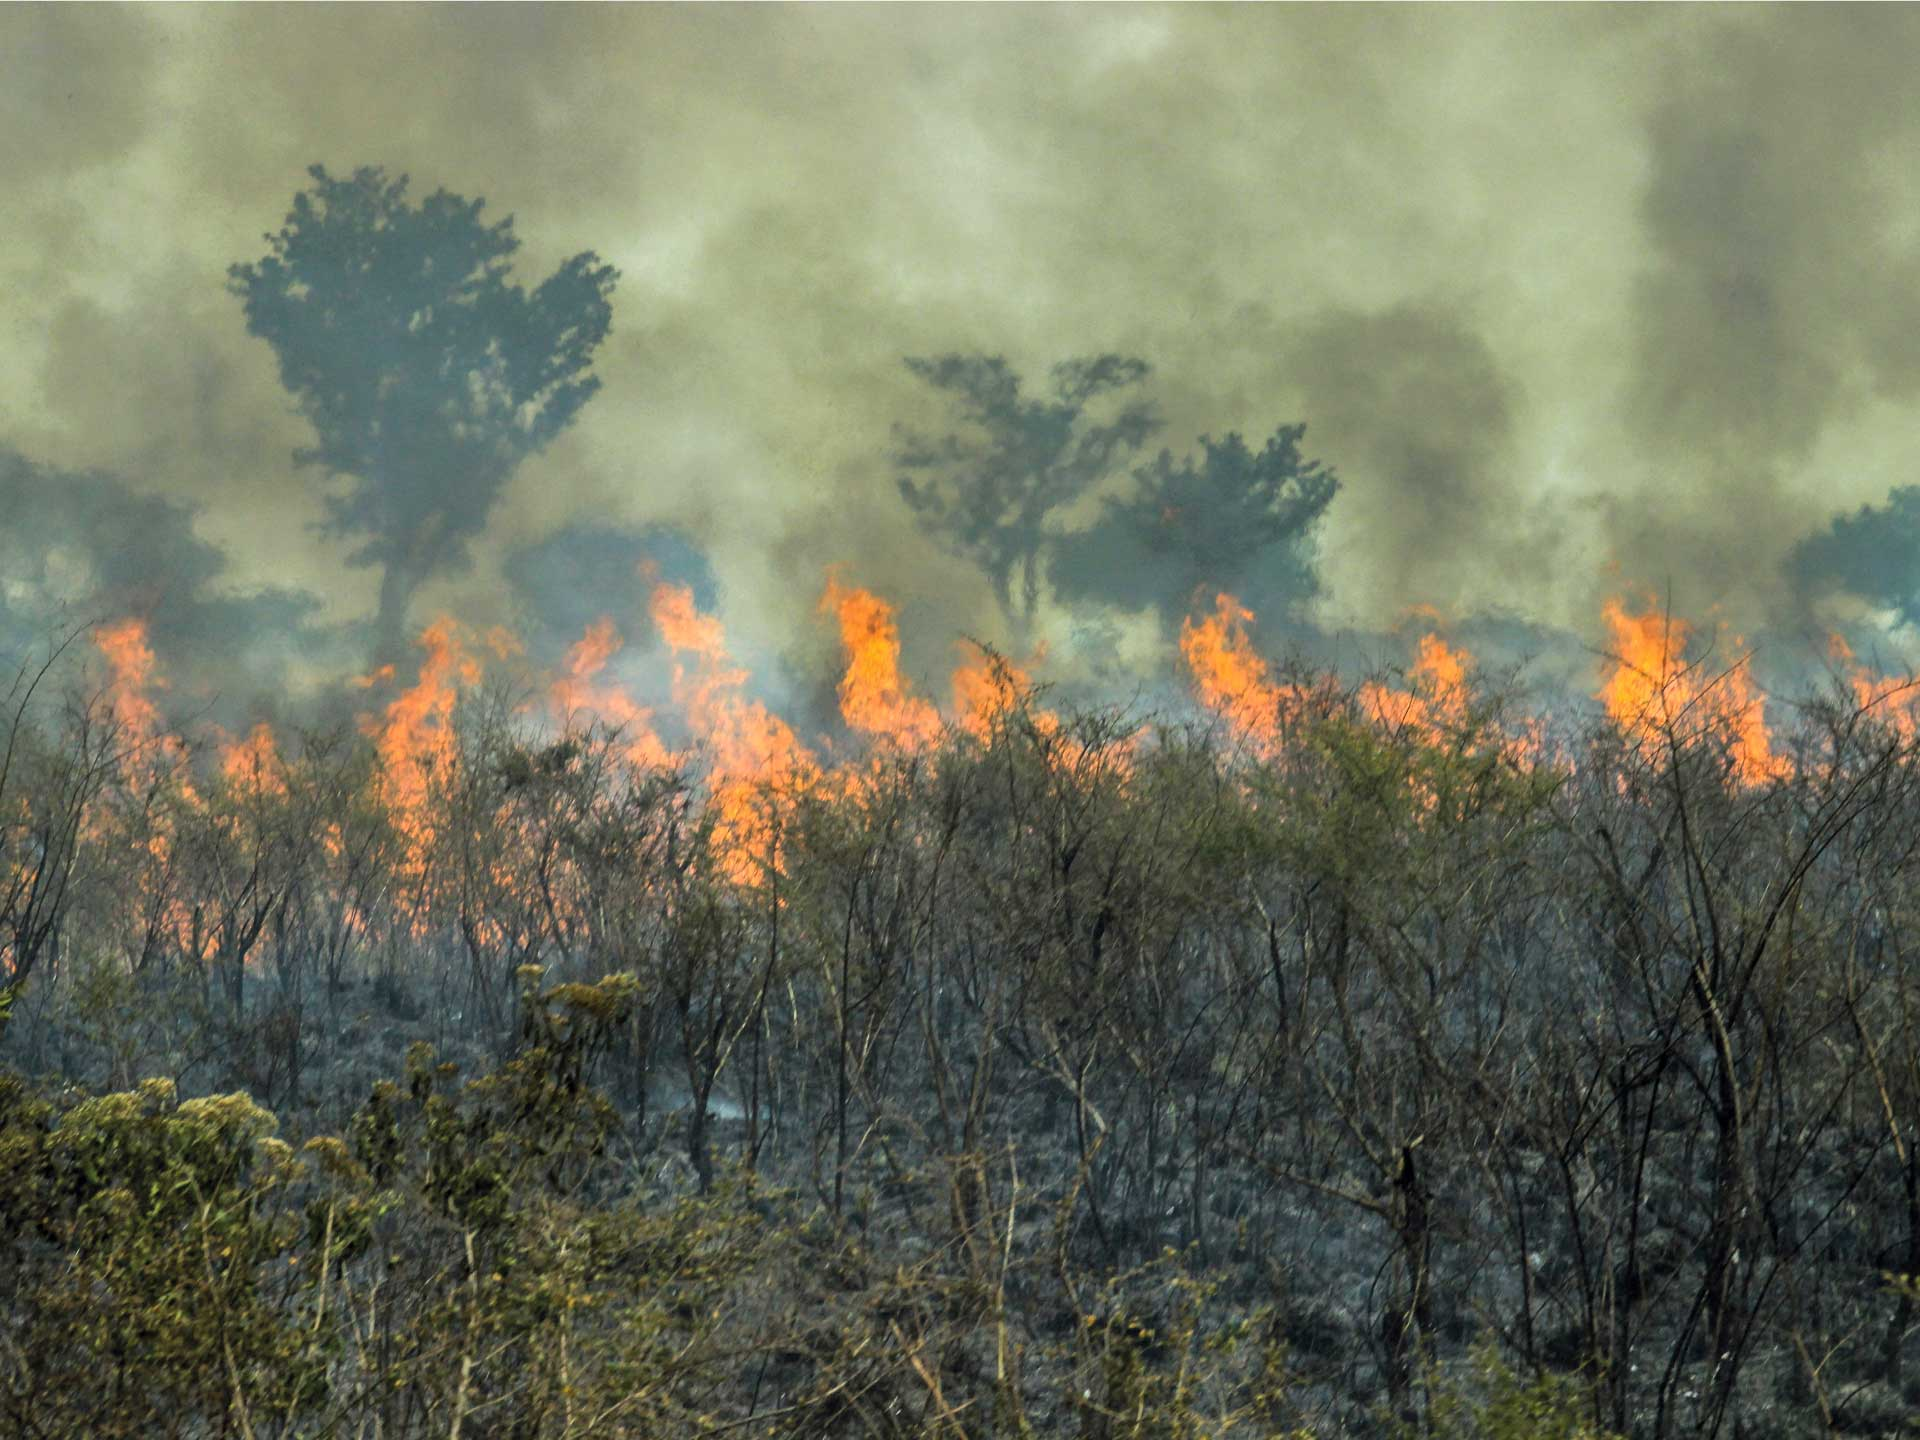 STUDY SHOWS THAT PARTS OF AMAZON ARE EMITTING MORE CARBON DIOXIDE THAN ITS ABSORBING